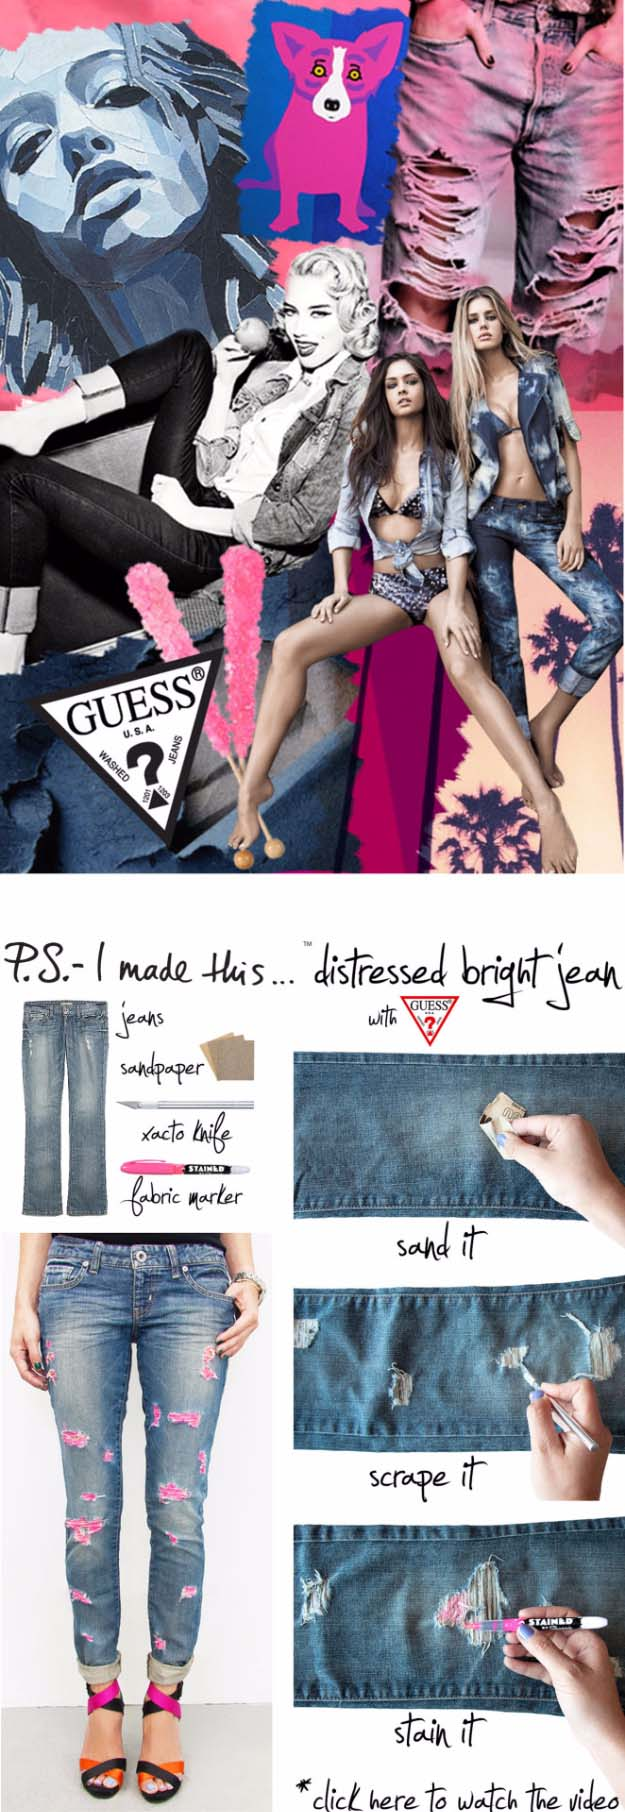 Cool DIY Fashion Ideas | Fun Do It Yourself Fashion projects | Learn how to refashion and sew jeans, T-shirts, skirts, and more | Distressed Bright Jeans | http://diyprojectsforteens.com/cool-diy-fashion-ideas/